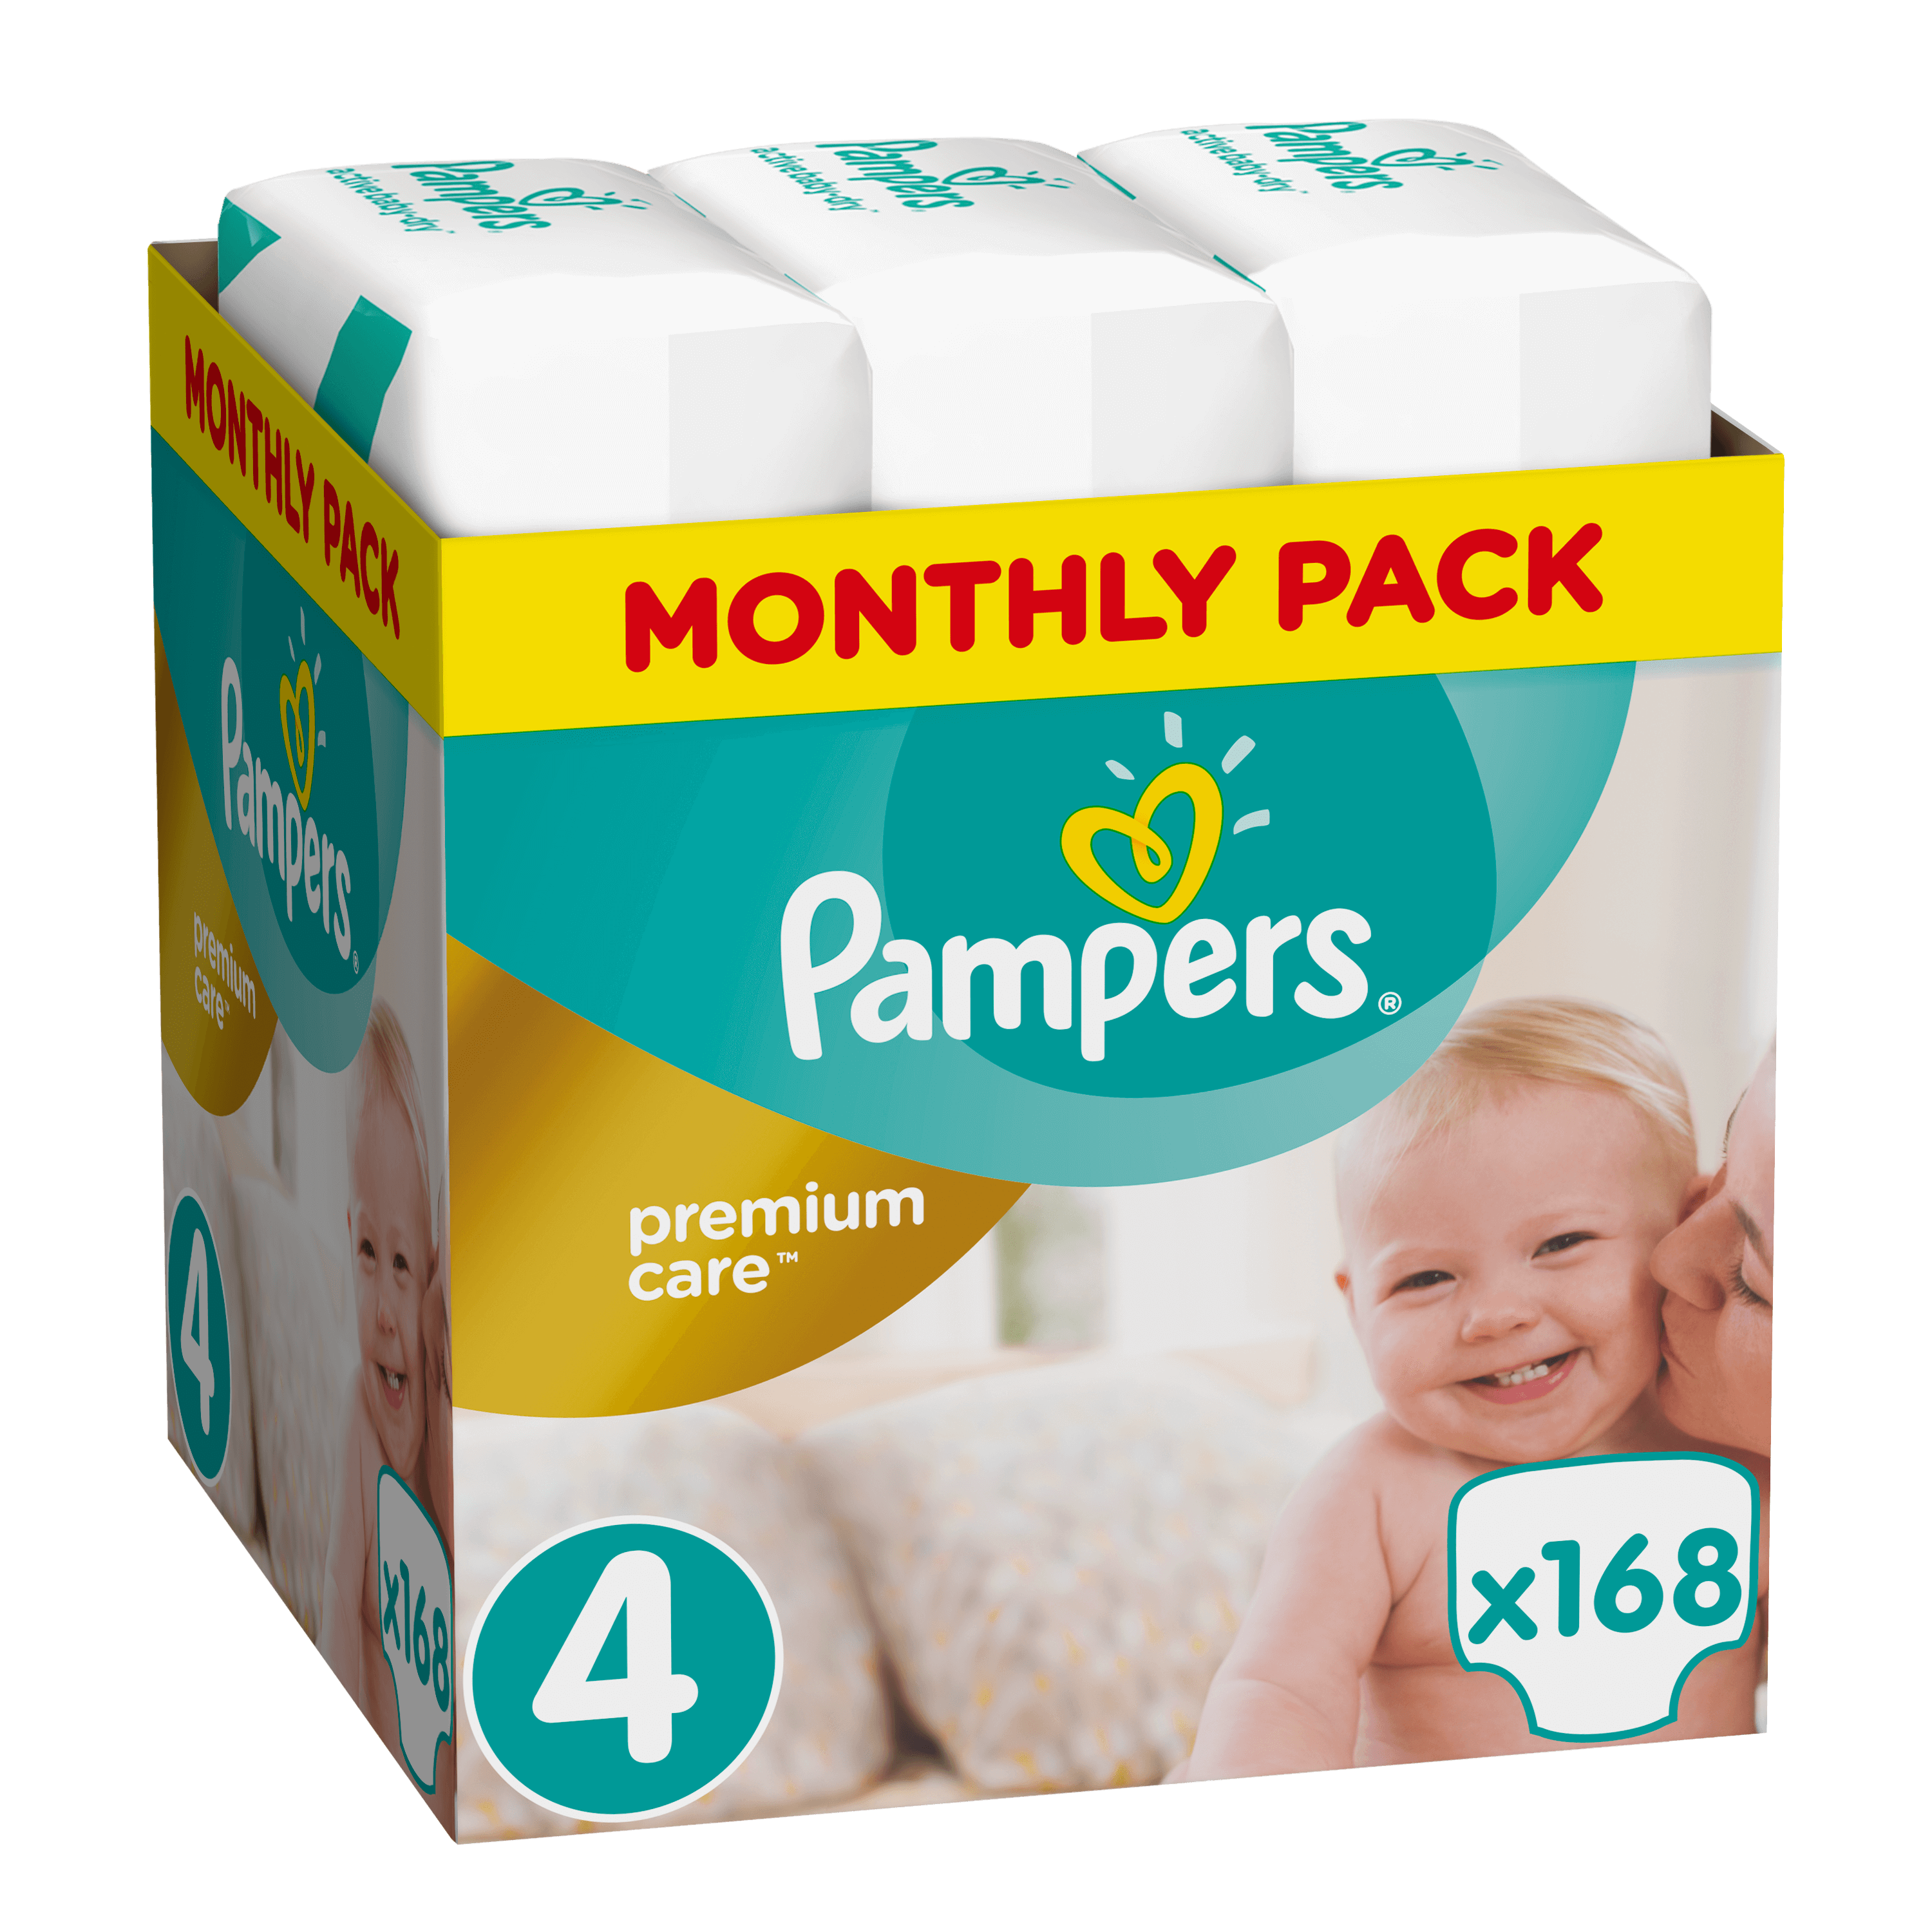 62cd8698b04 Πάνες Pampers Premium Care Monthly Pack Νο4 (8-14kg) 168τεμ - Panes.gr